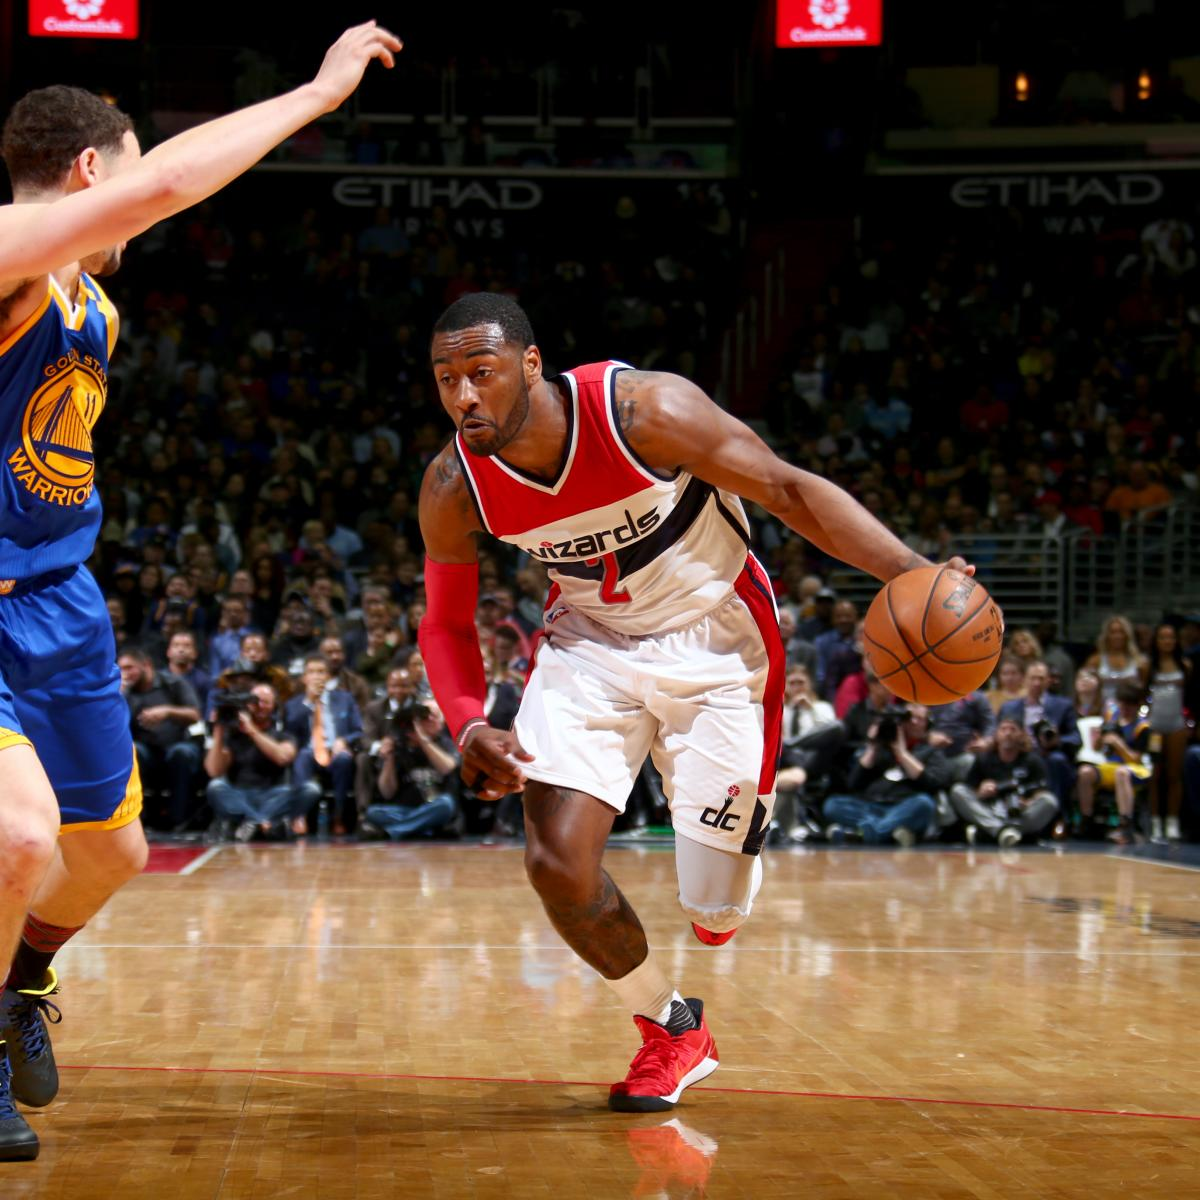 Golden State Warriors Vs Wizards Full Game Highlights: Warriors Vs. Wizards: Score, Highlights, Reaction From